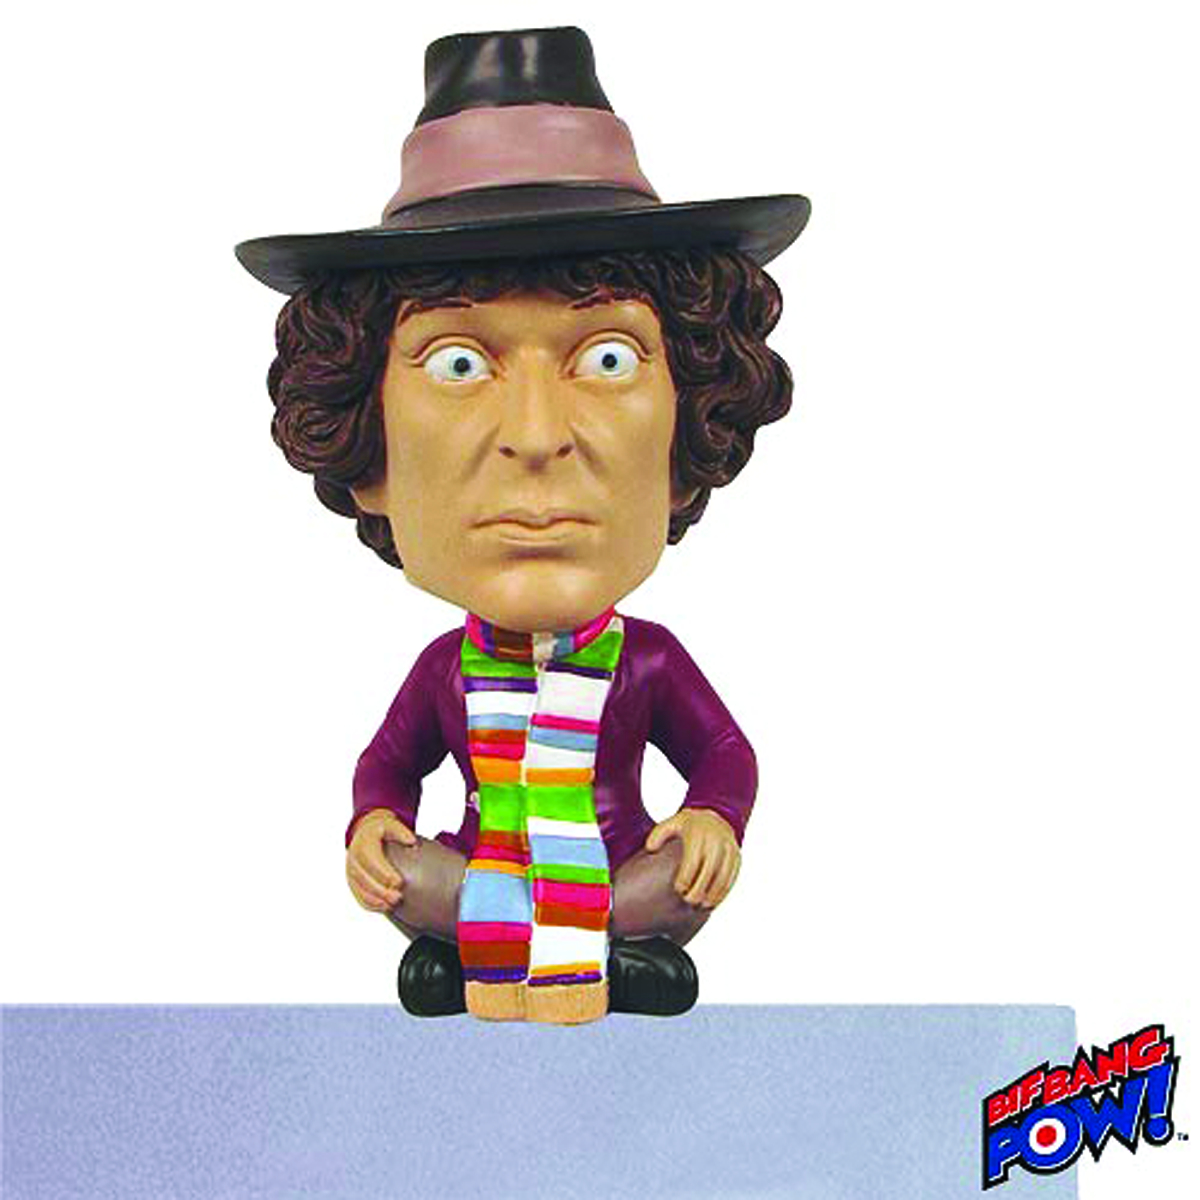 DR WHO 4TH DOCTOR MONITOR MATE BOBBLEHEAD